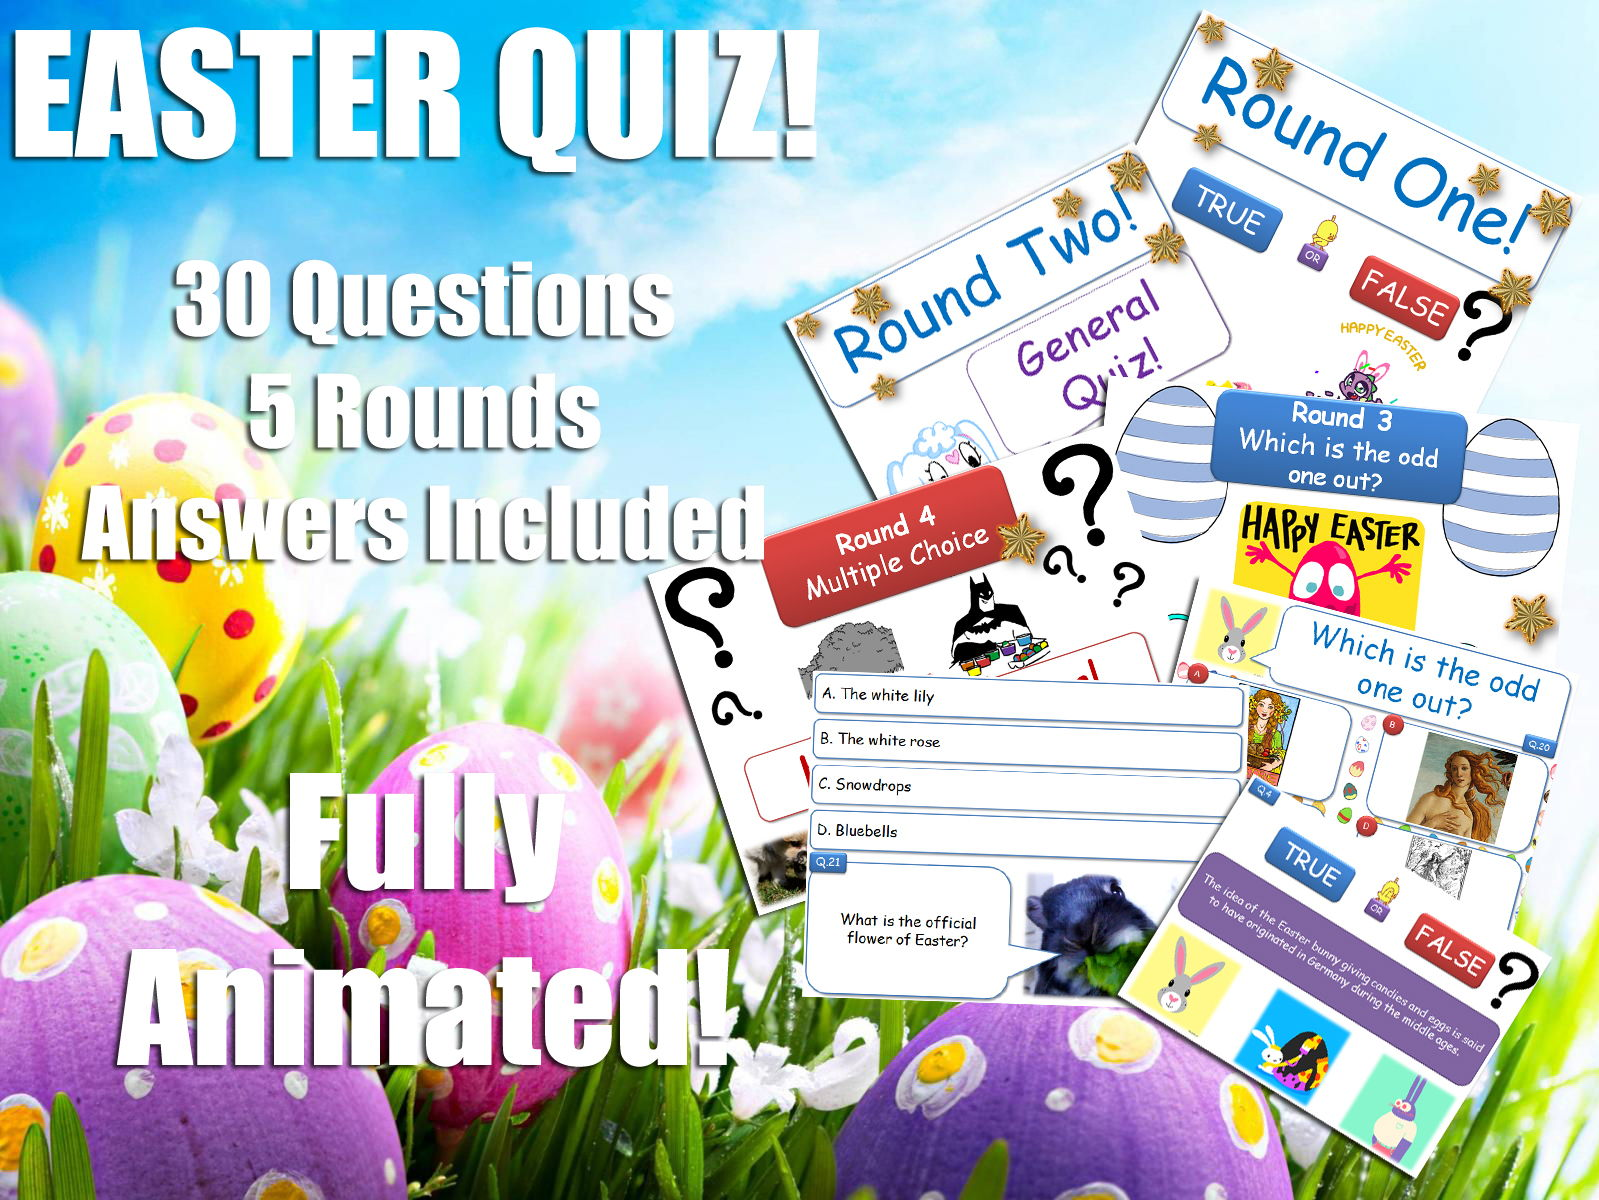 Form Tutor - Easter Quiz Bundle! [Form Time Activities!] P4C & Philosophy - Debates - Activities - Discussions - SMSC! [Philosophy Boxes Edition!]